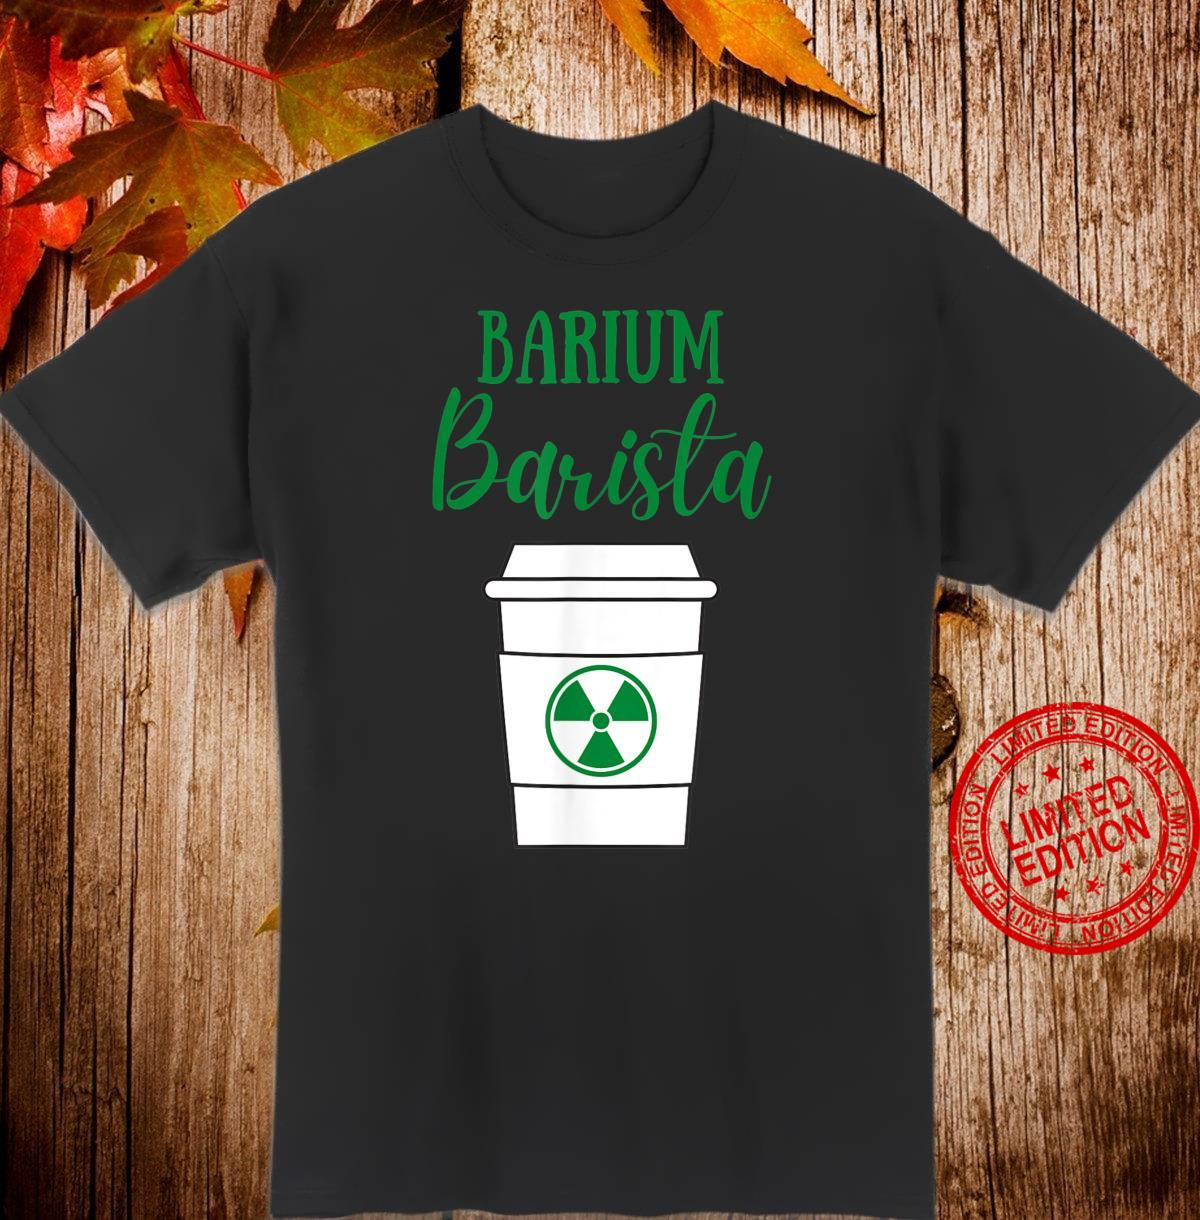 Barium Barista,Cute Rad Tech RT,Radiology Technician Shirt